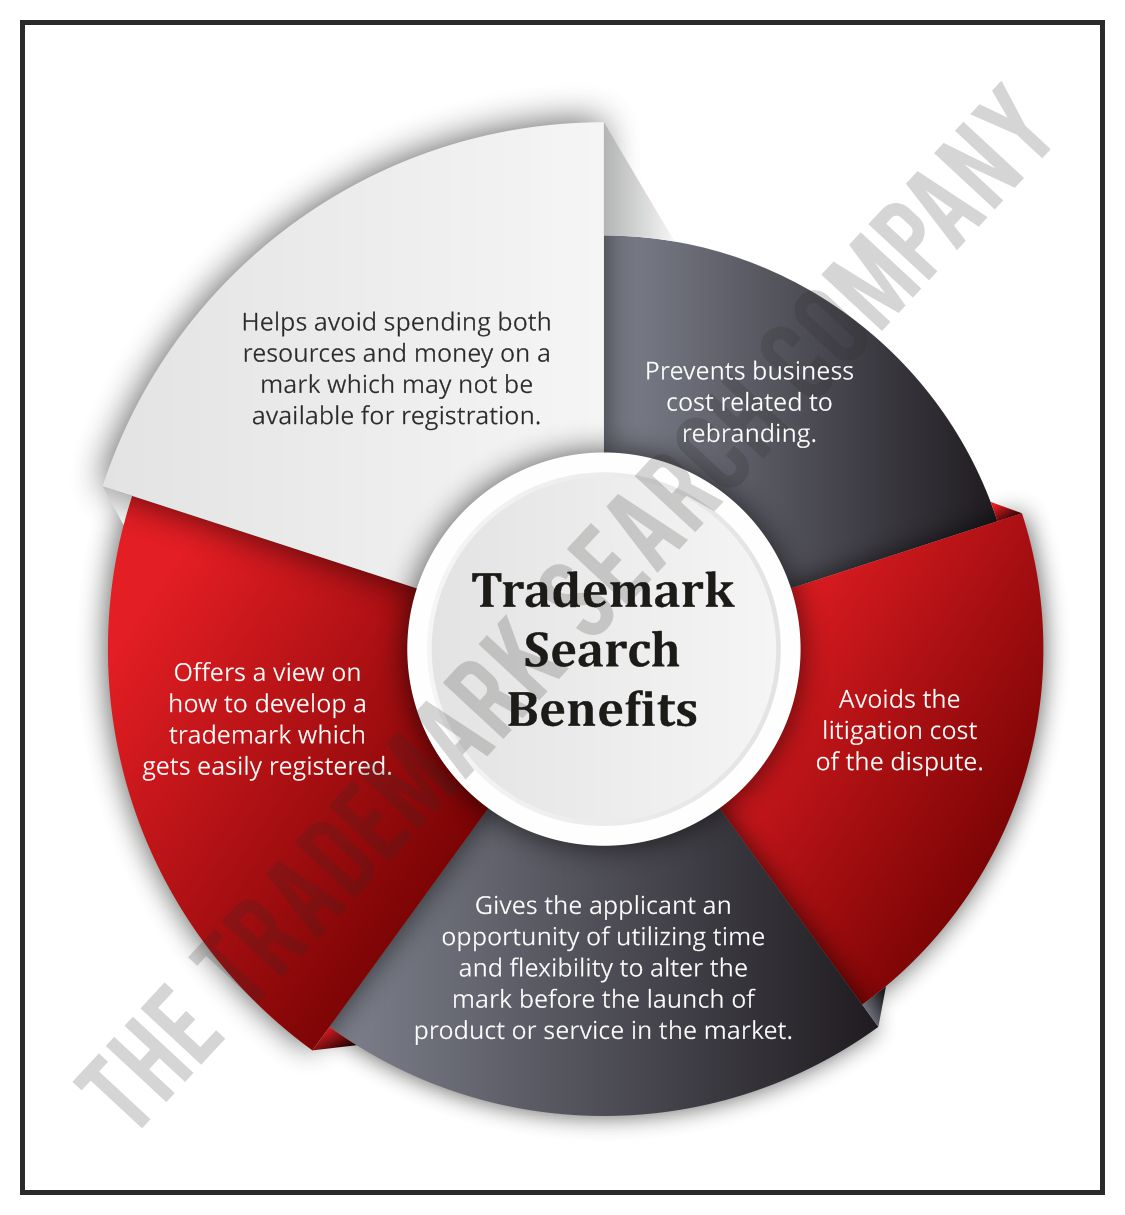 Trademark Search Benefits